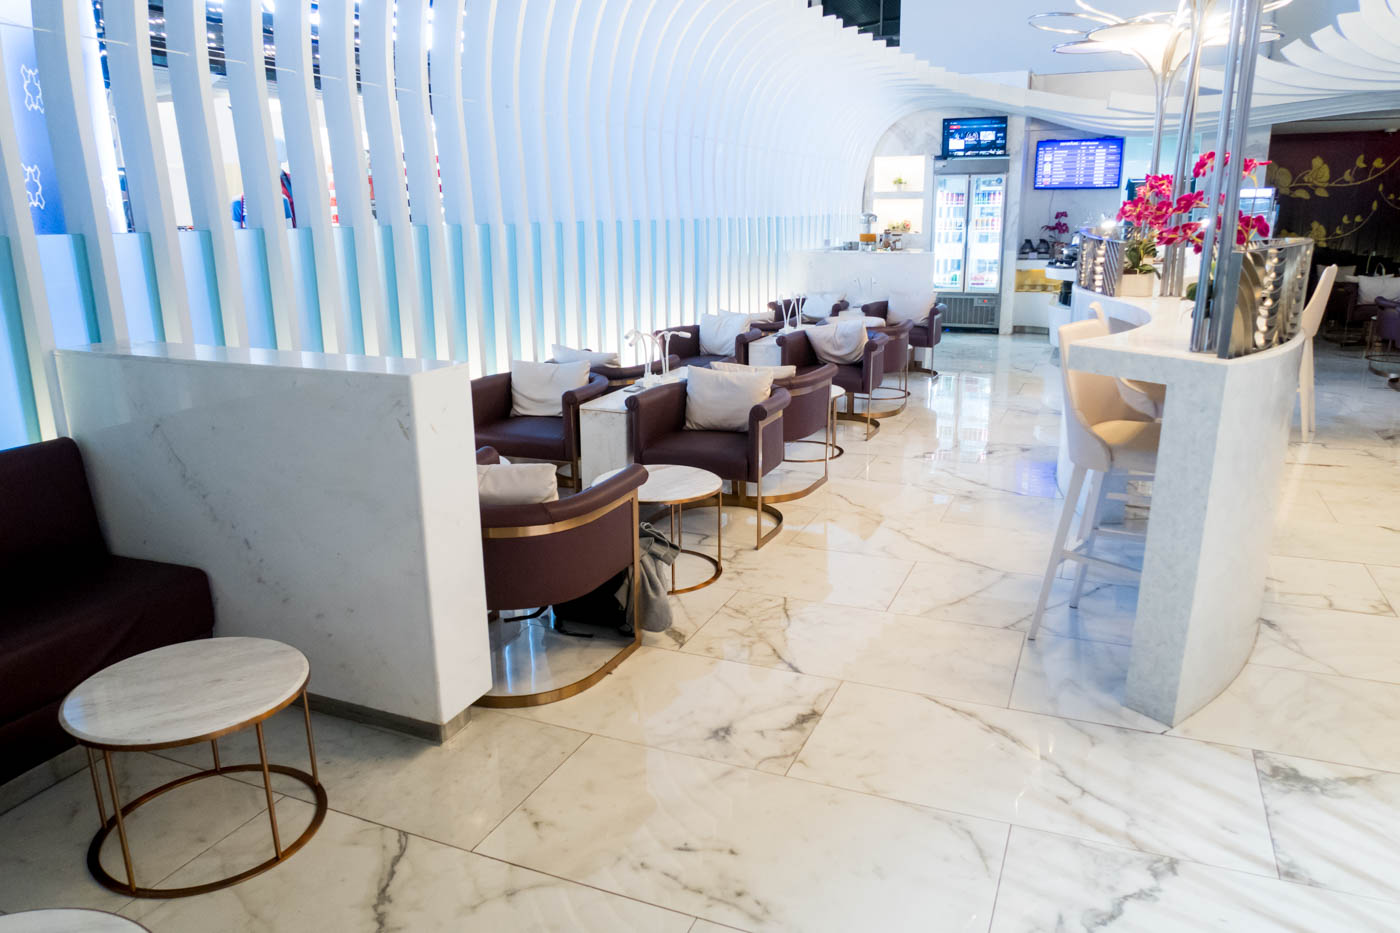 Overview of Thai Lounge for International Flights Out of Phuket